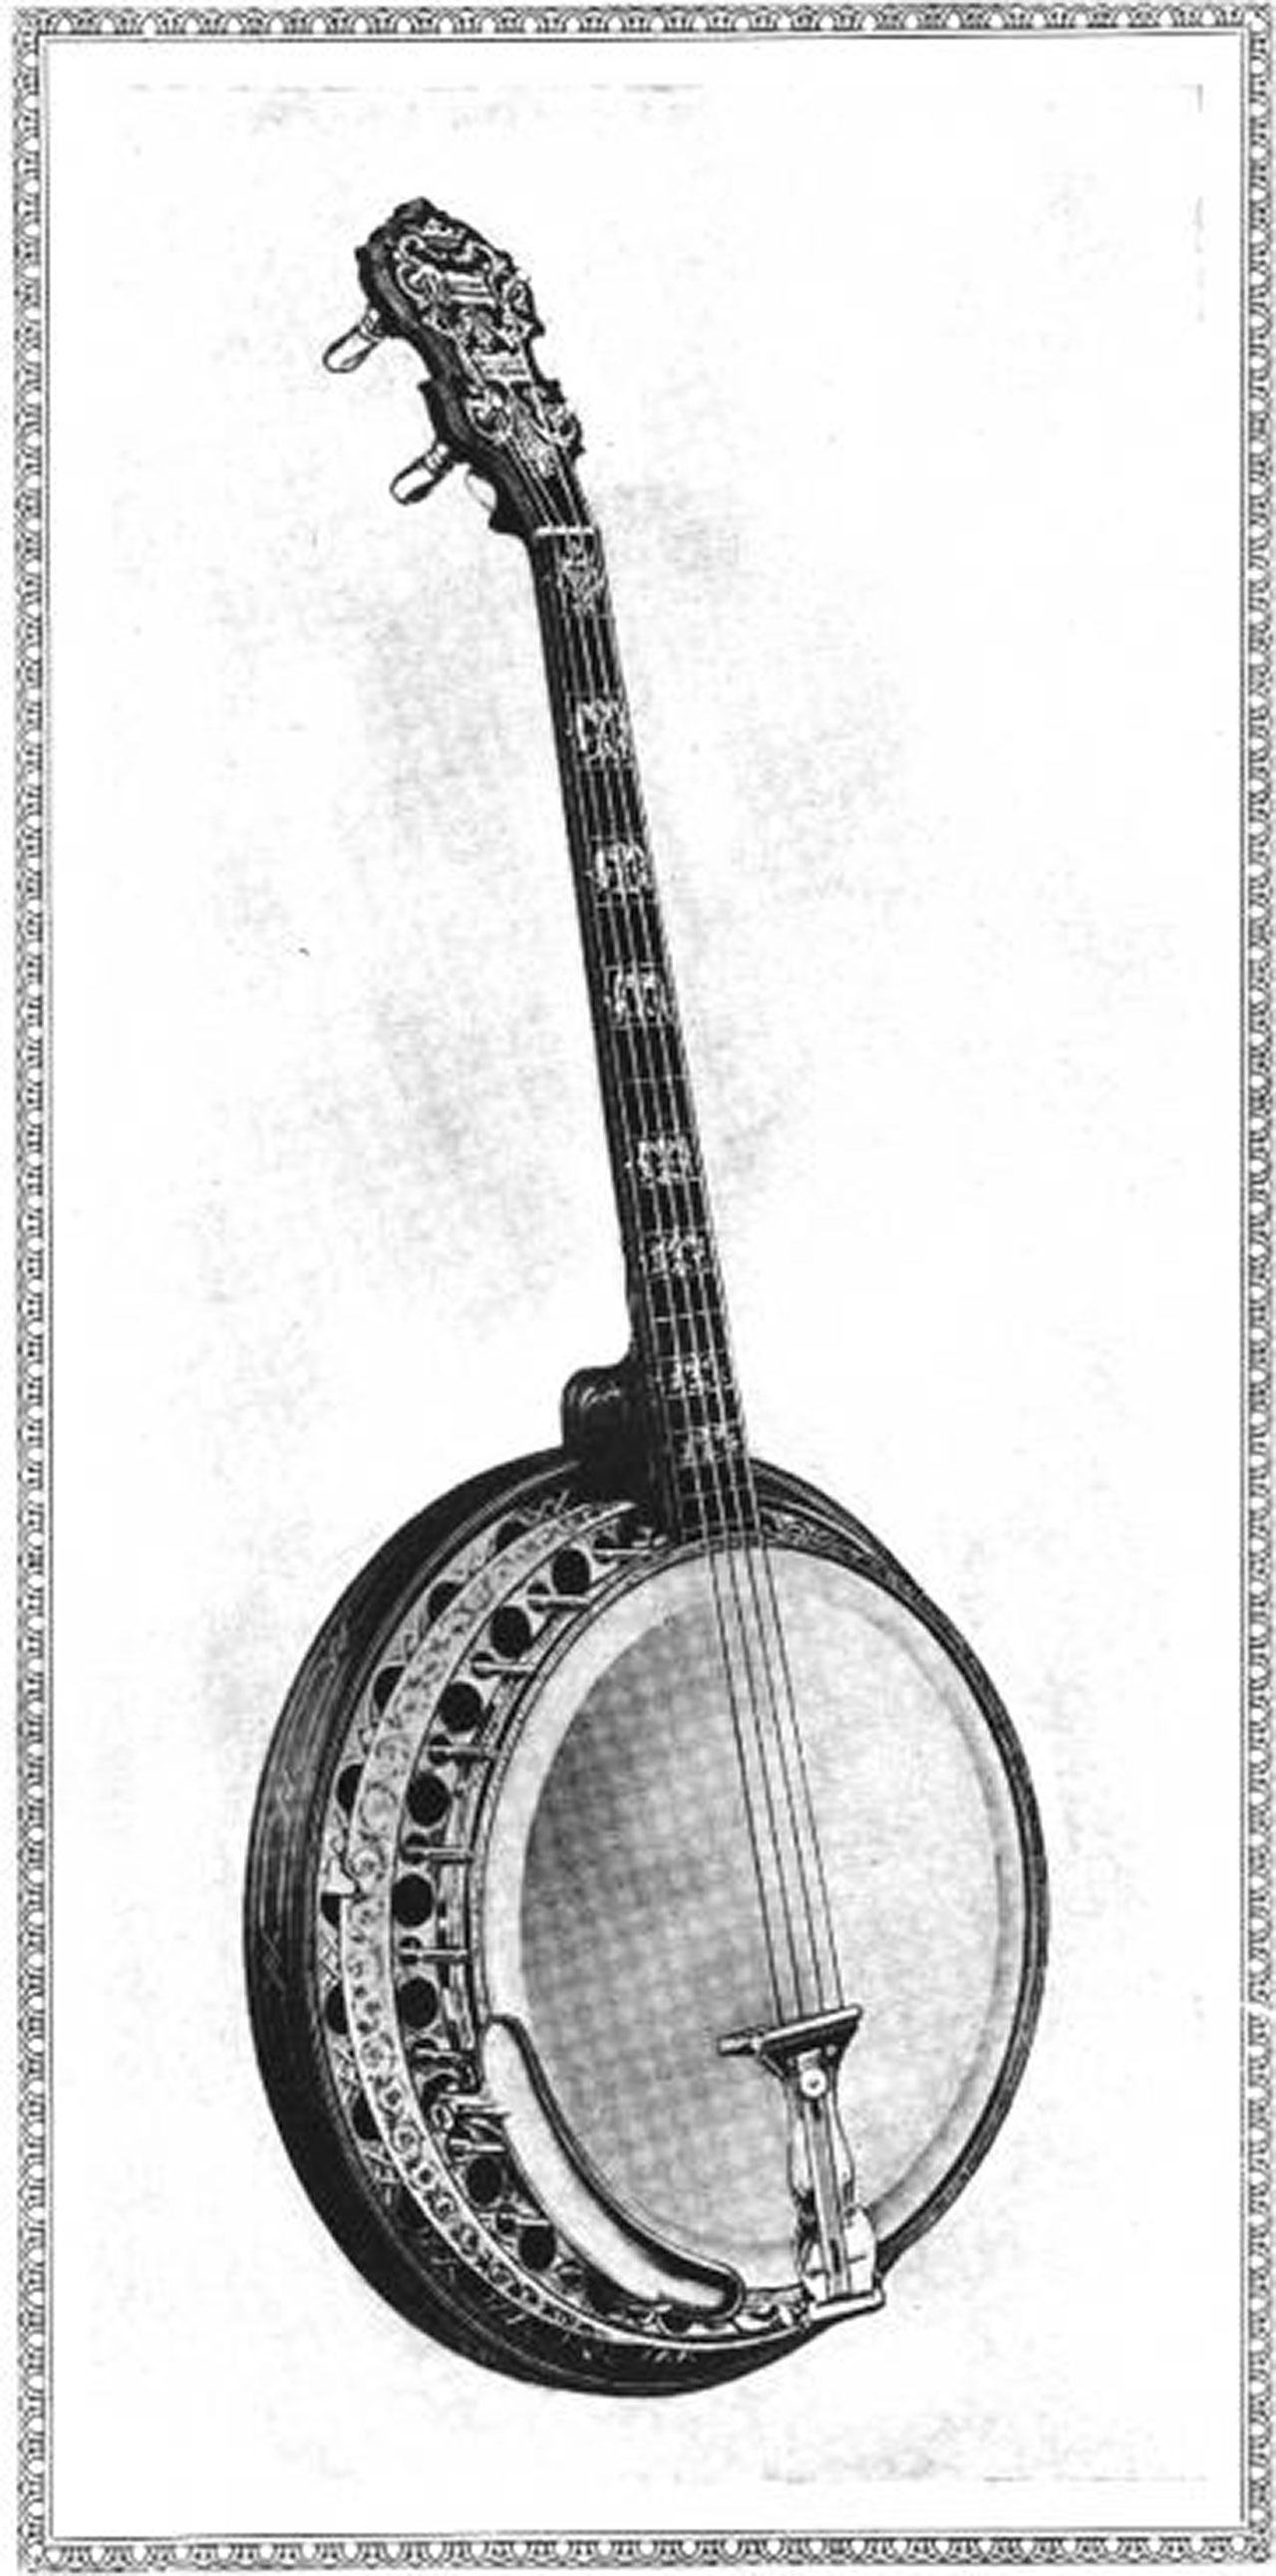 Super Paramount Artists Supreme Tenor Banjo, 1930 Catalog Photo